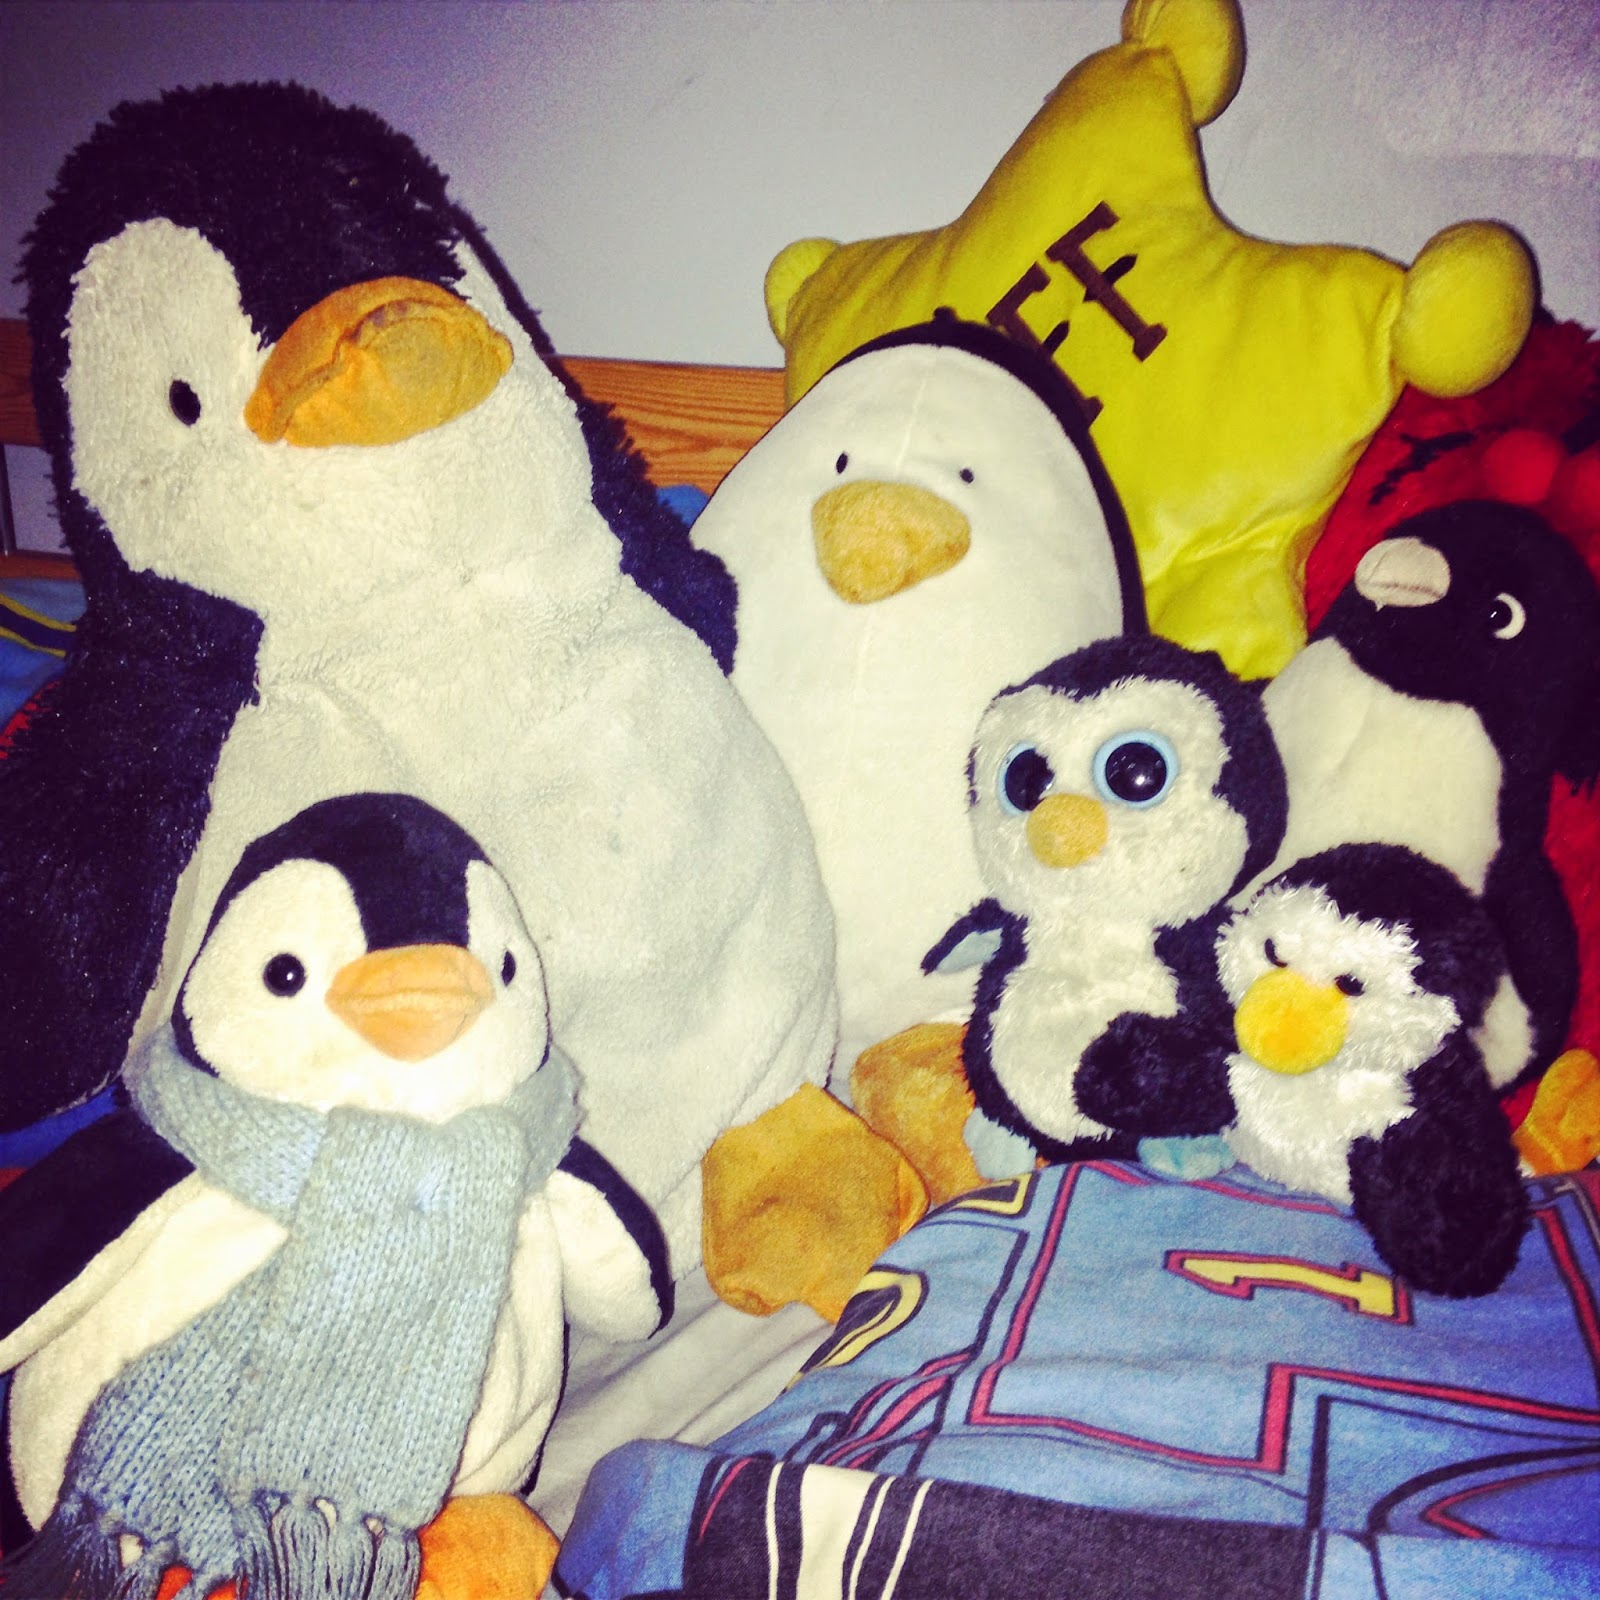 All The Boy's toy penguin collection